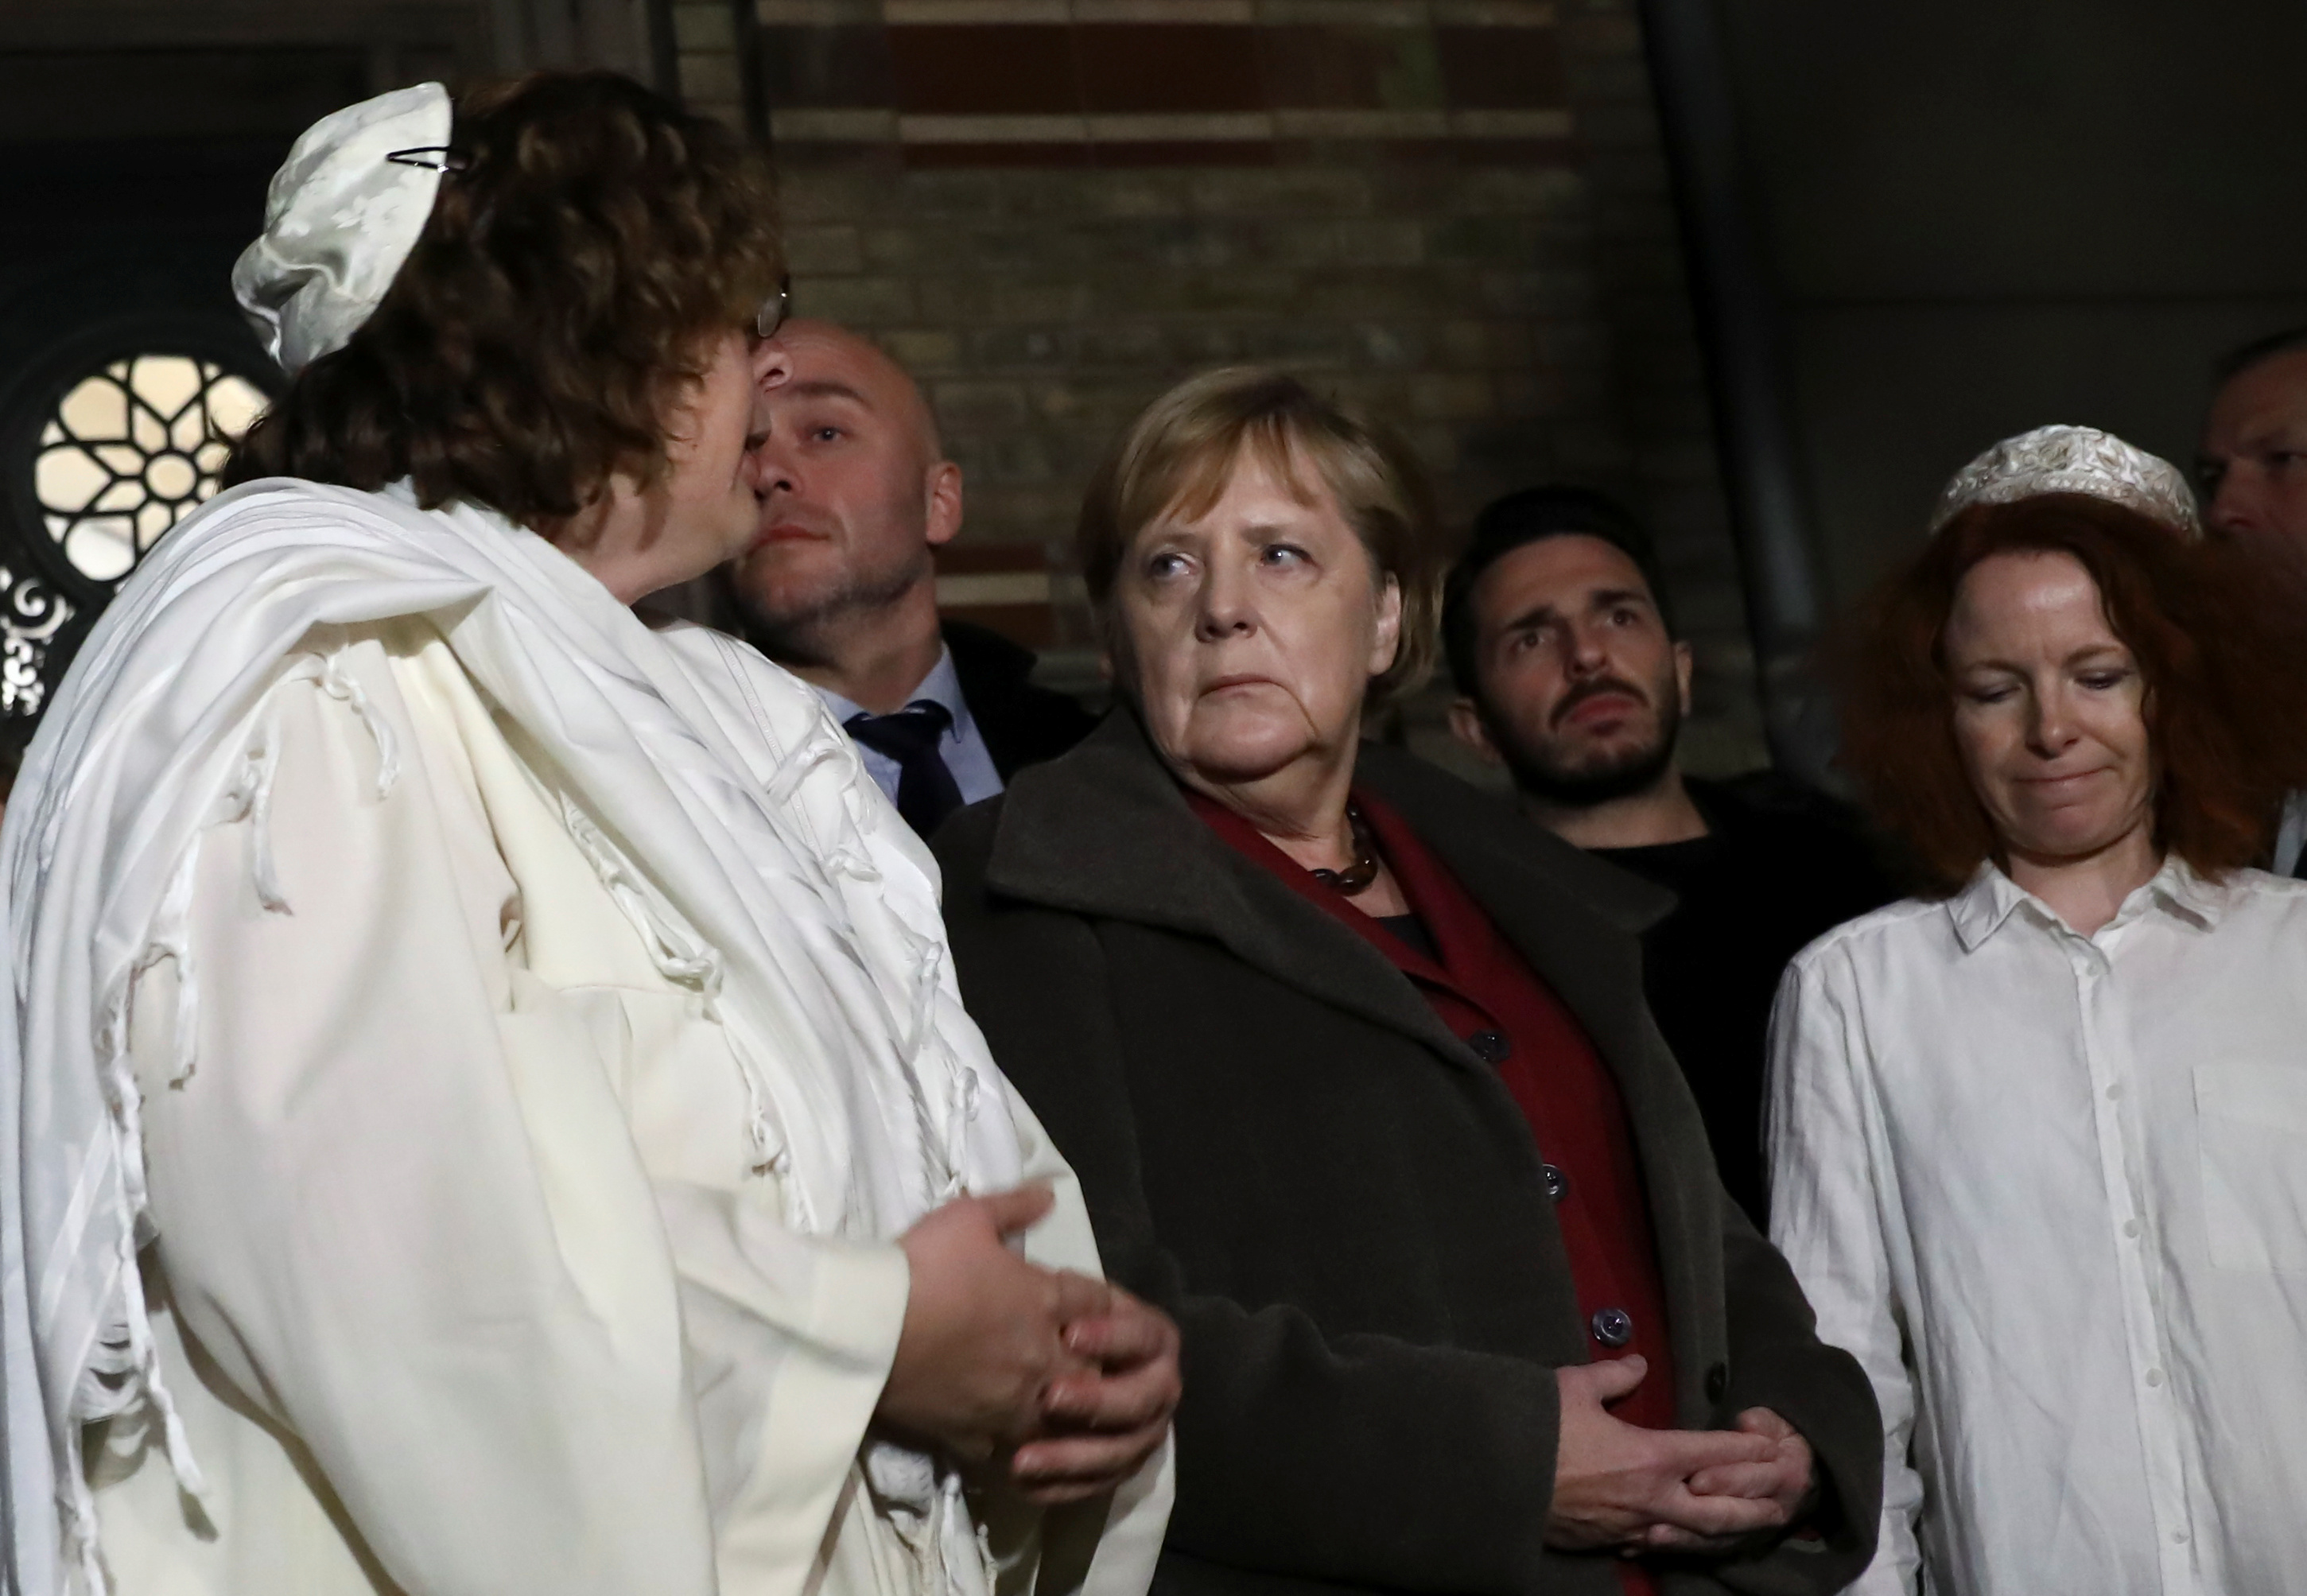 German Chancellor Angela Merkel visits Berlin's New Synagogue on October 9, 2019, after Halle synagogue shooting. (Christian Mang/Reuters)